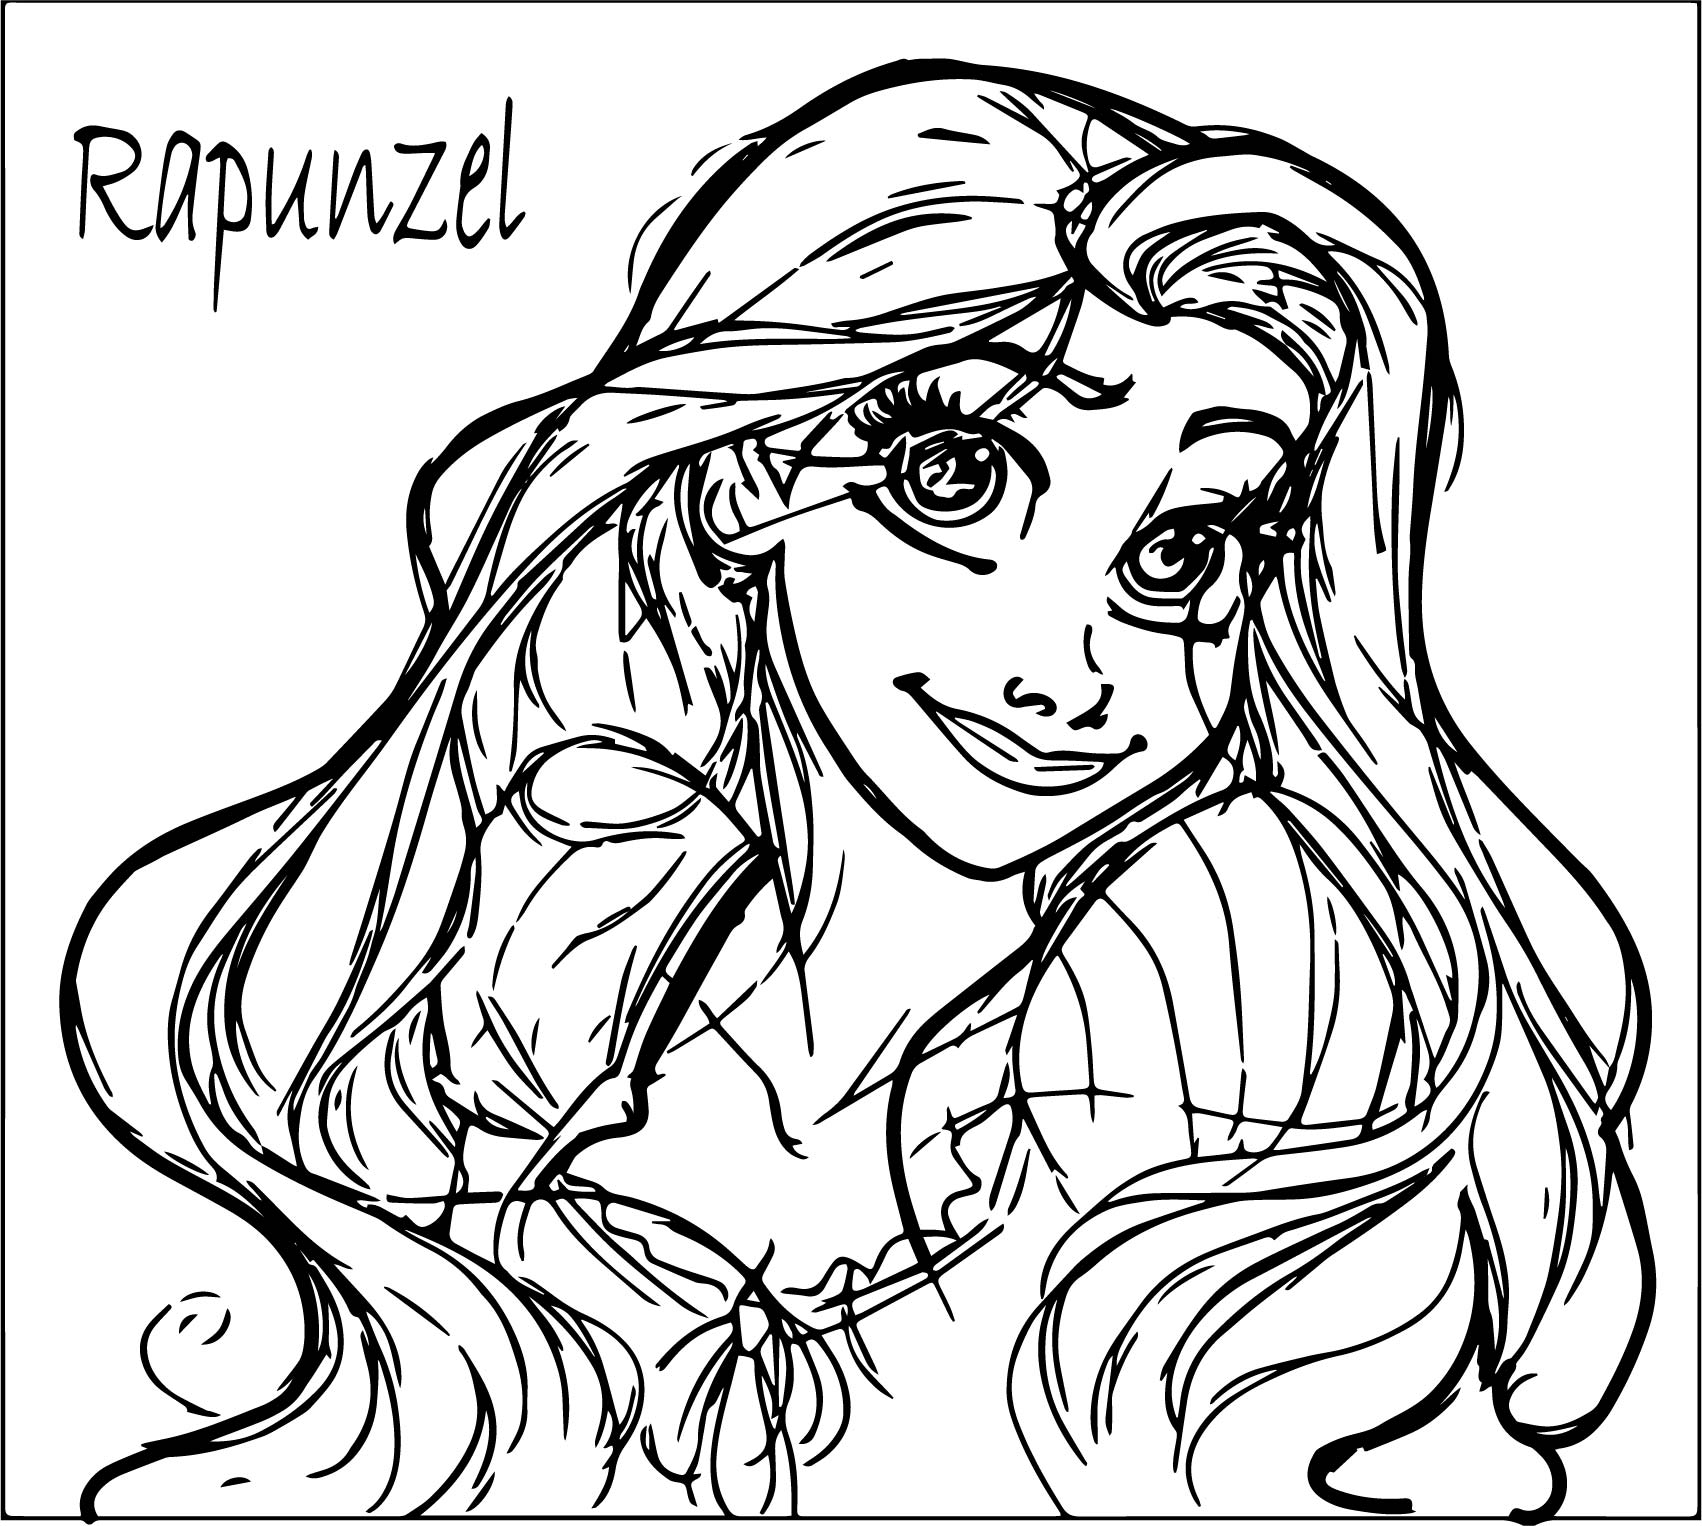 Disney rapunzel from tangled coloring page for Tangled coloring pages